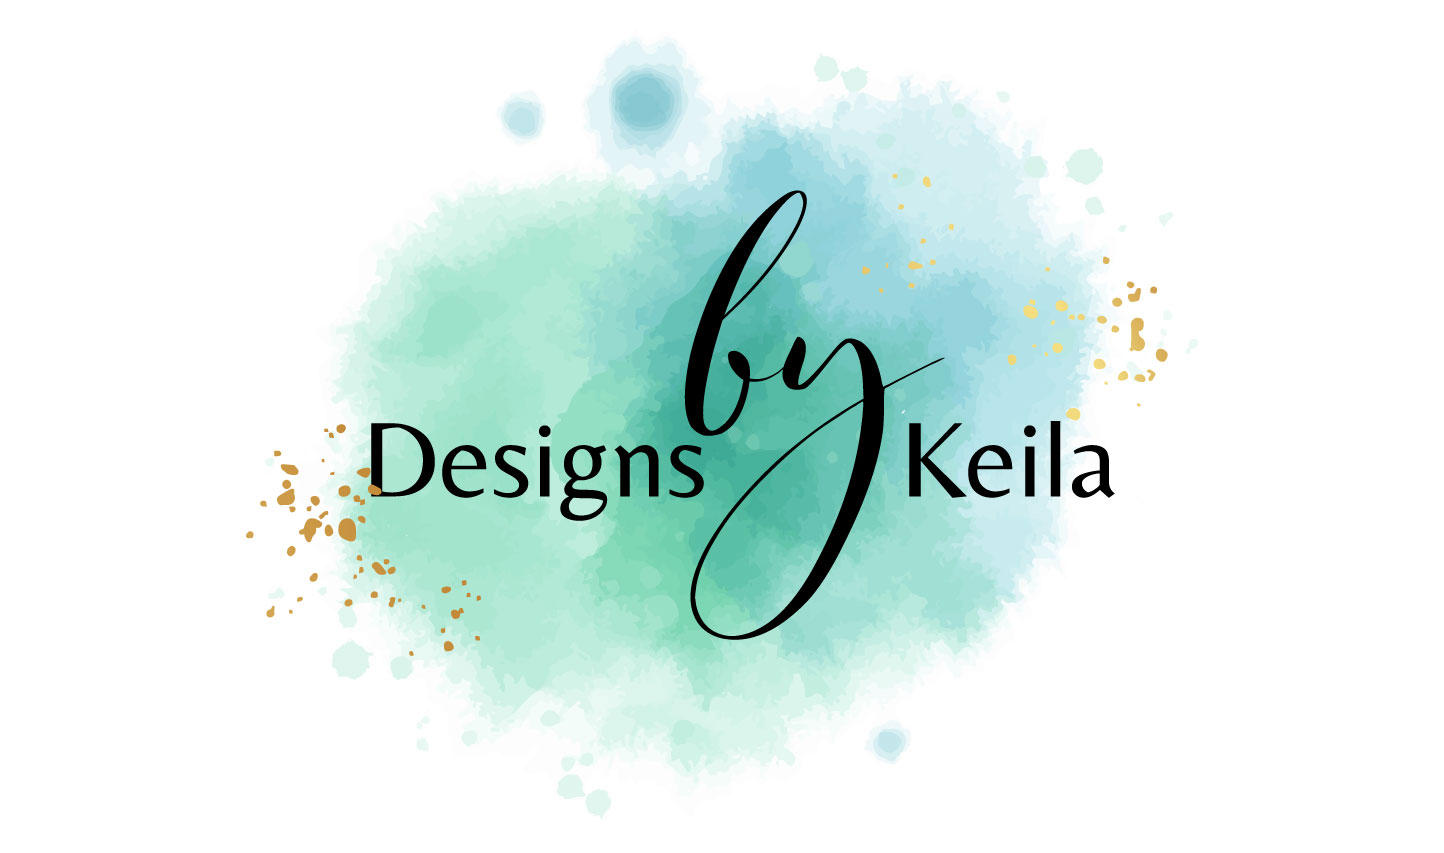 Designs by Keila - Be Inspired. Creative. Yourself